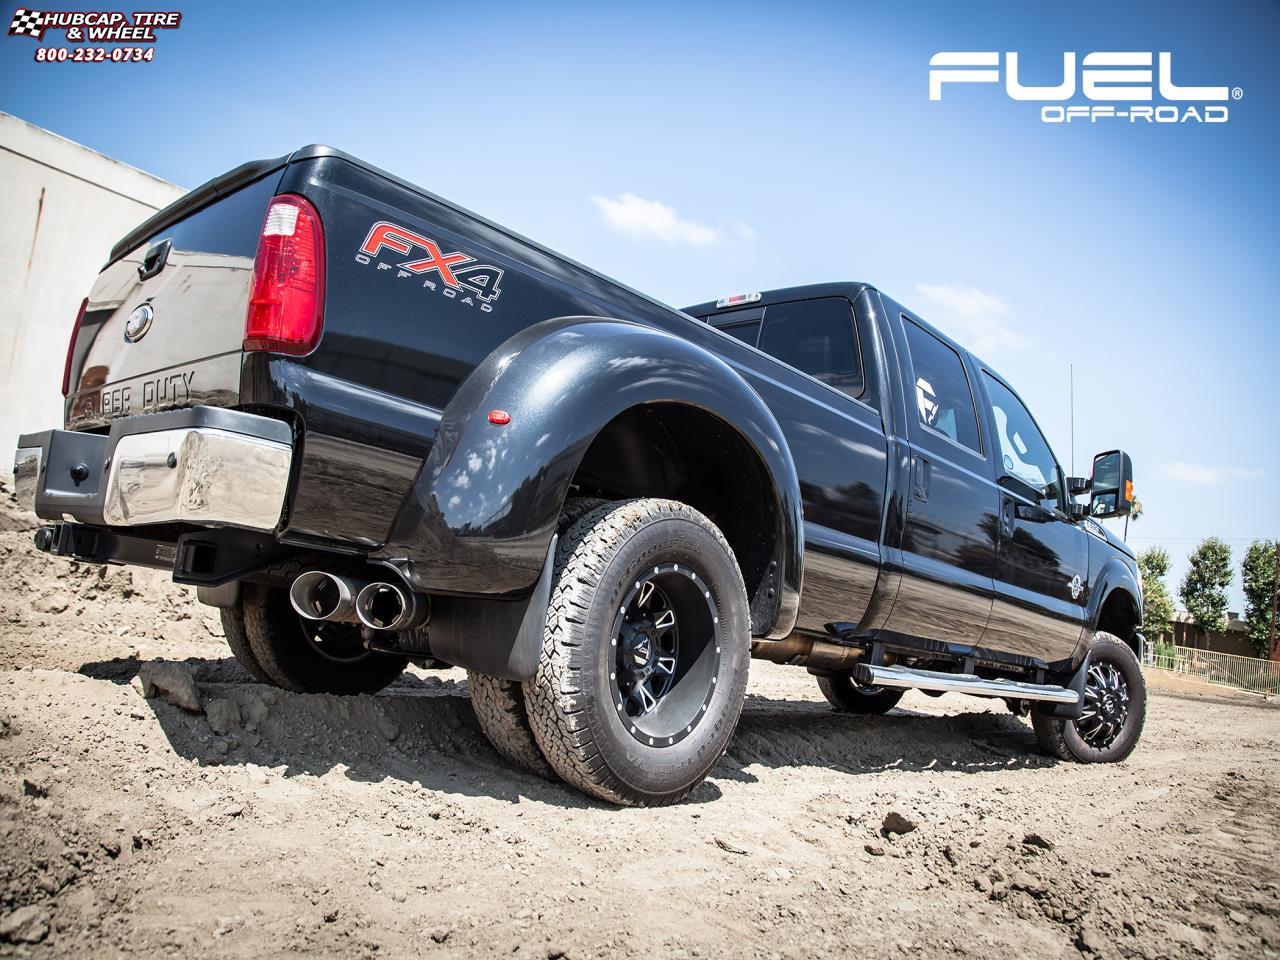 Ford f 350 dually fuel throttle dually front d513 17x7 matte black milled wheels and